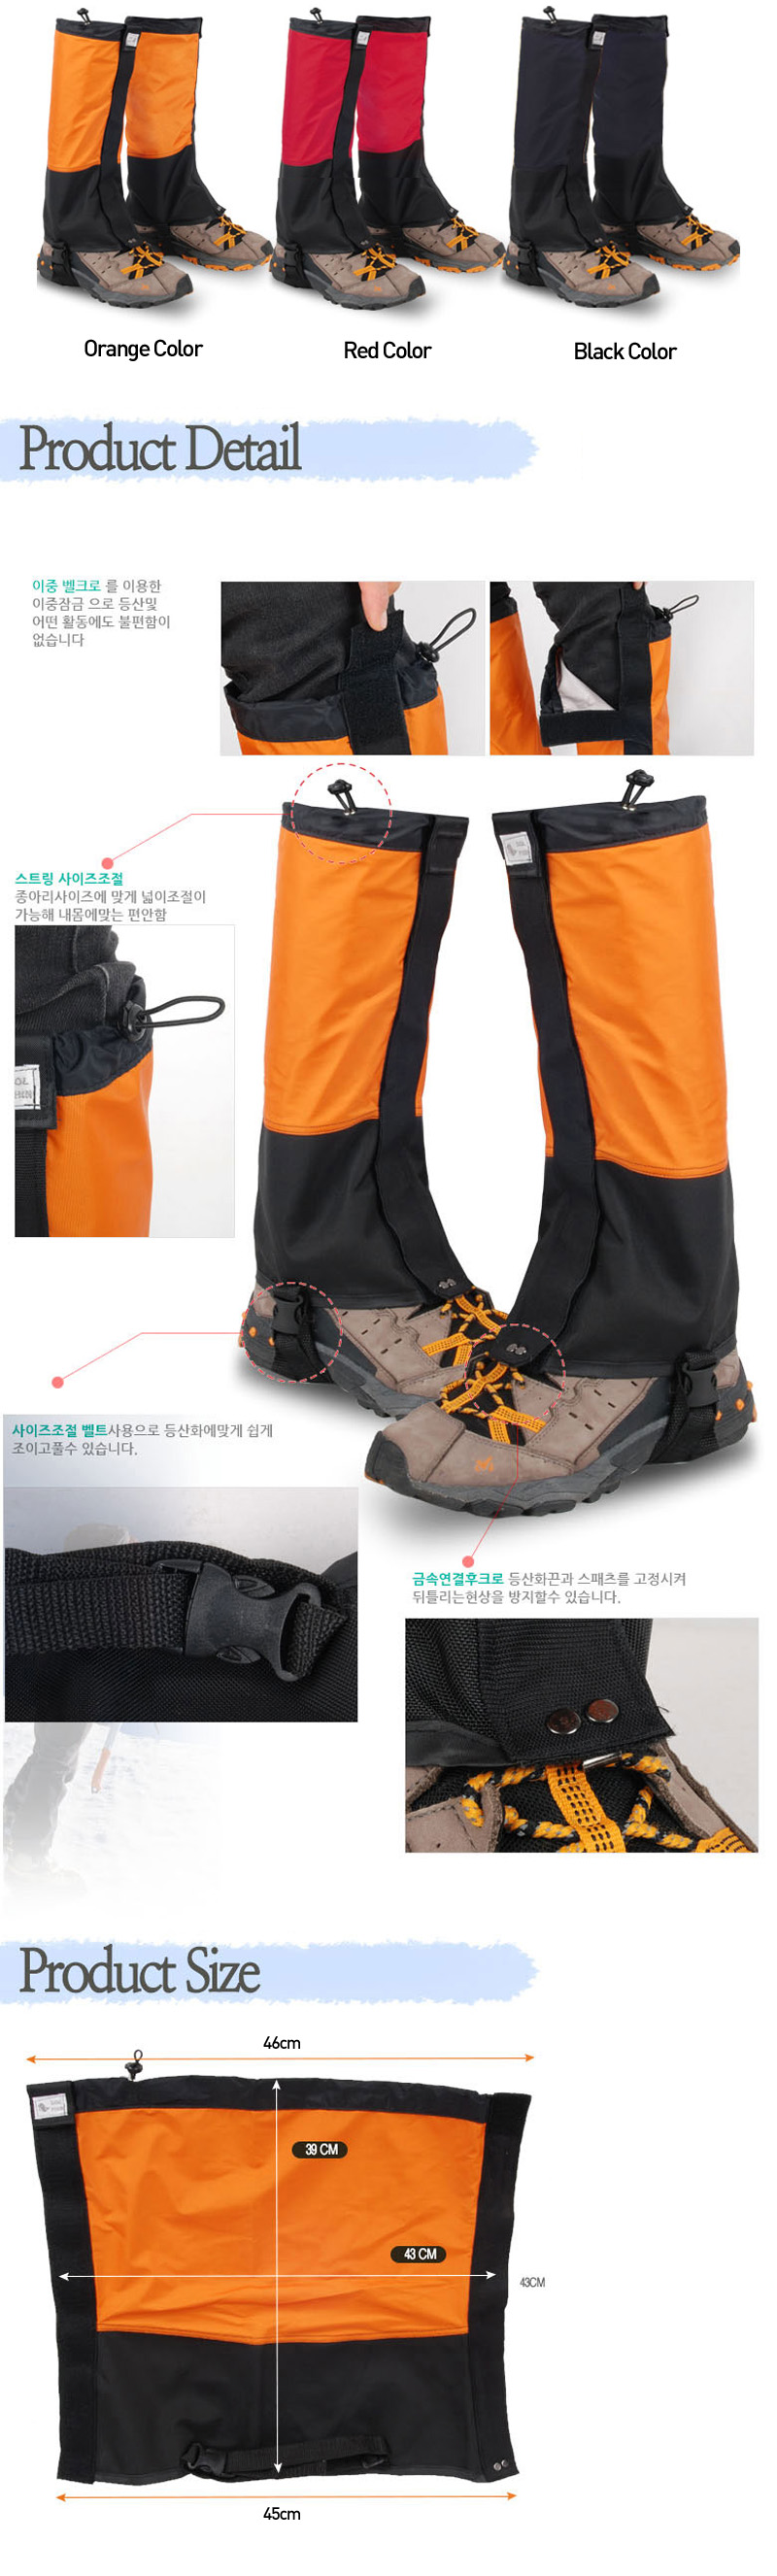 Gaiter Waterproof